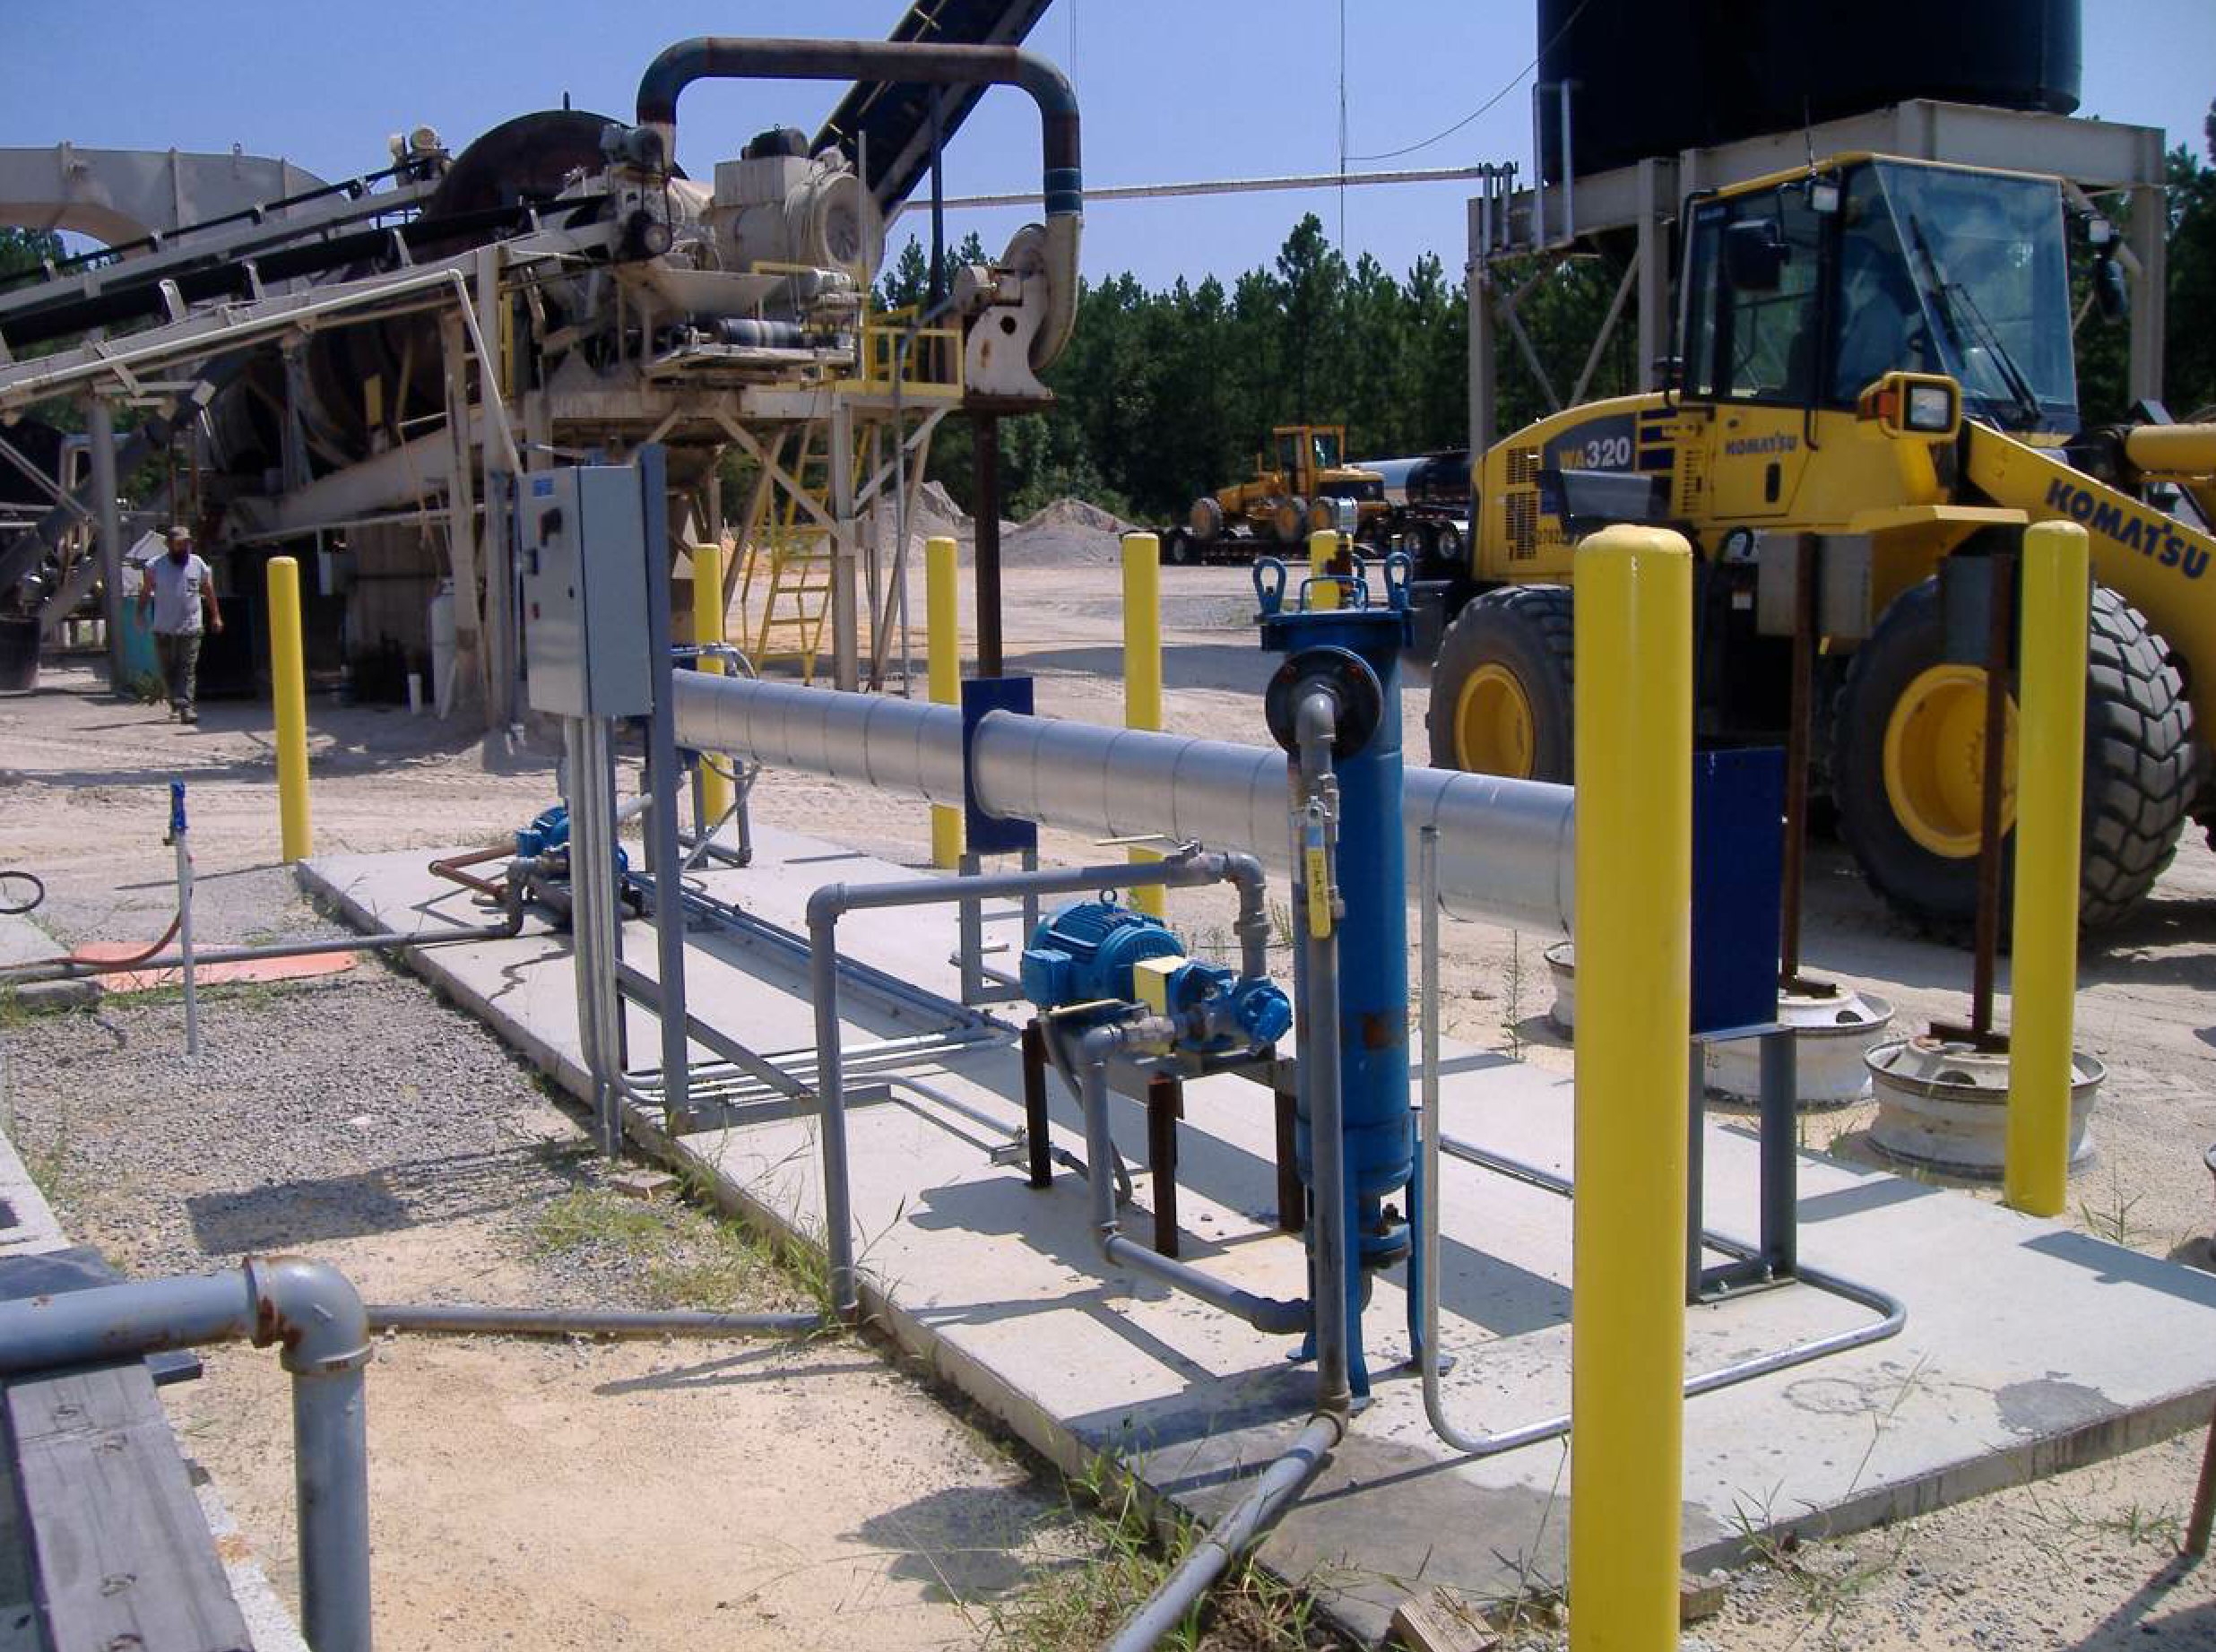 PHCo offers inline electric fuel oil preheaters to adjust viscosity in heavy fuel oil.